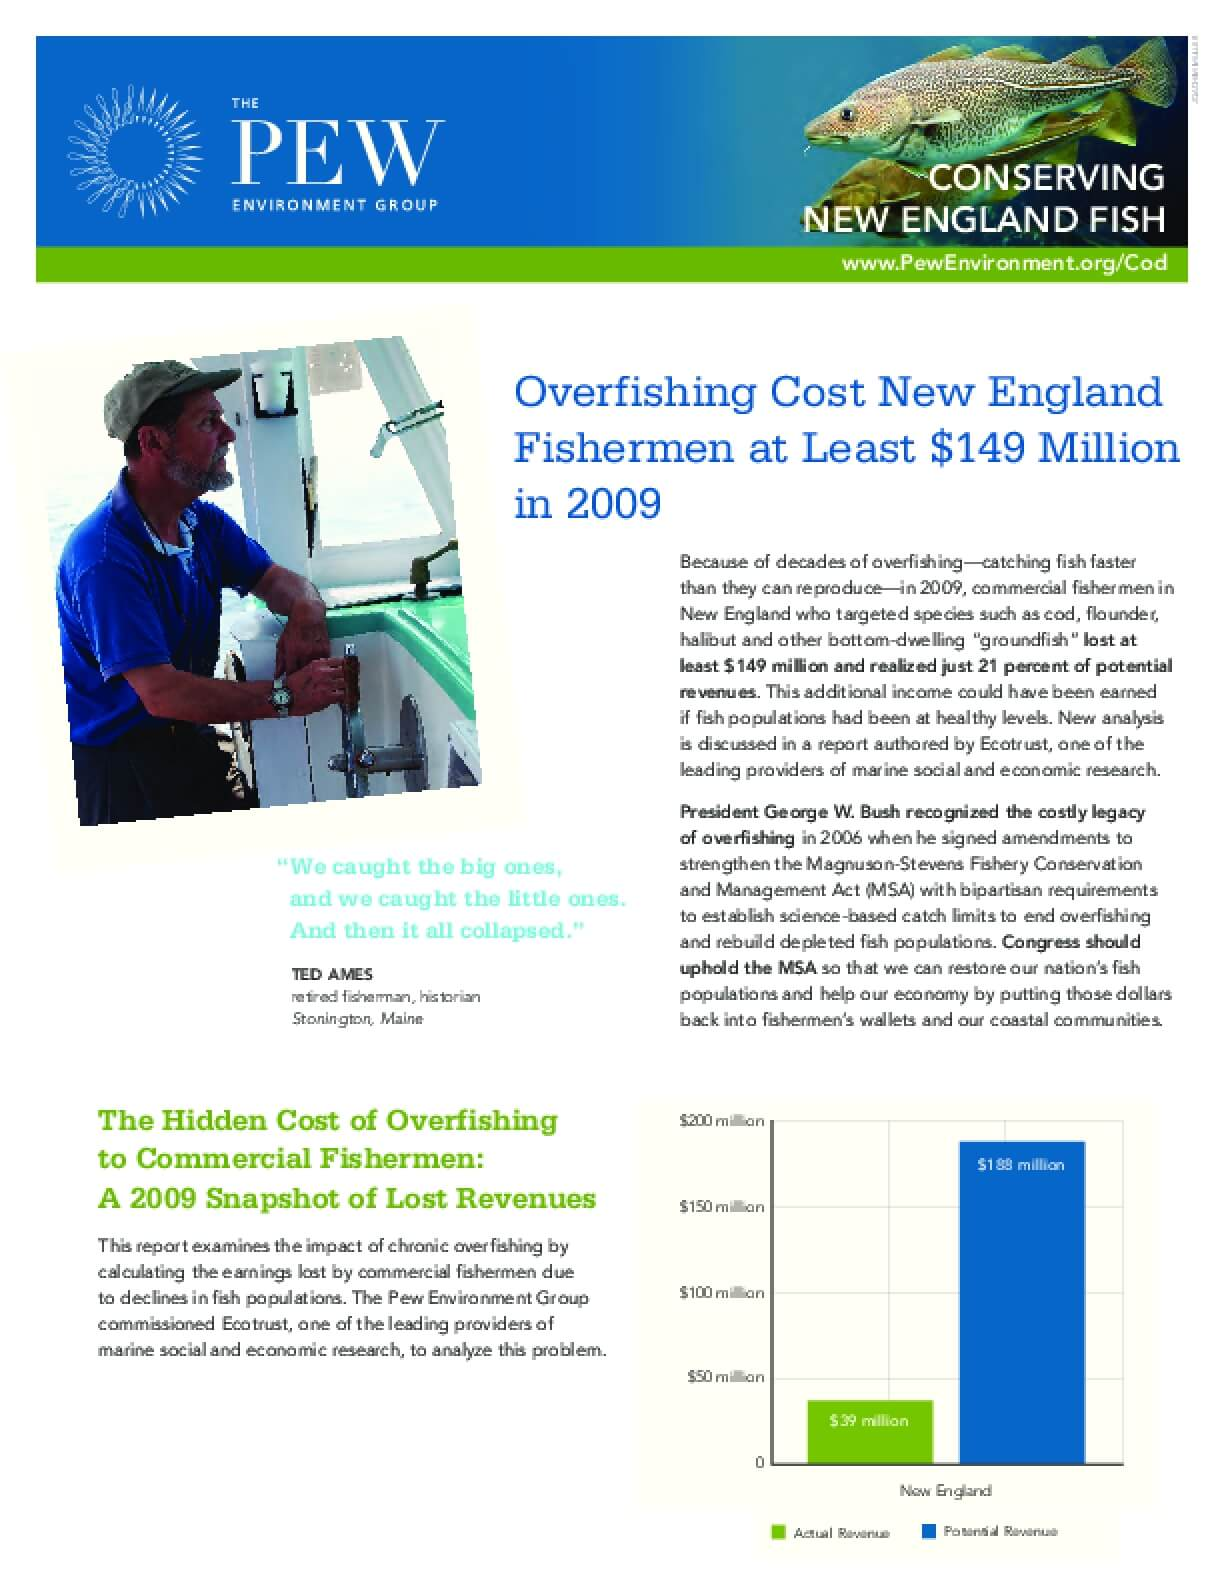 Overfishing Cost New England Fishermen at Least $149 Million in 2009